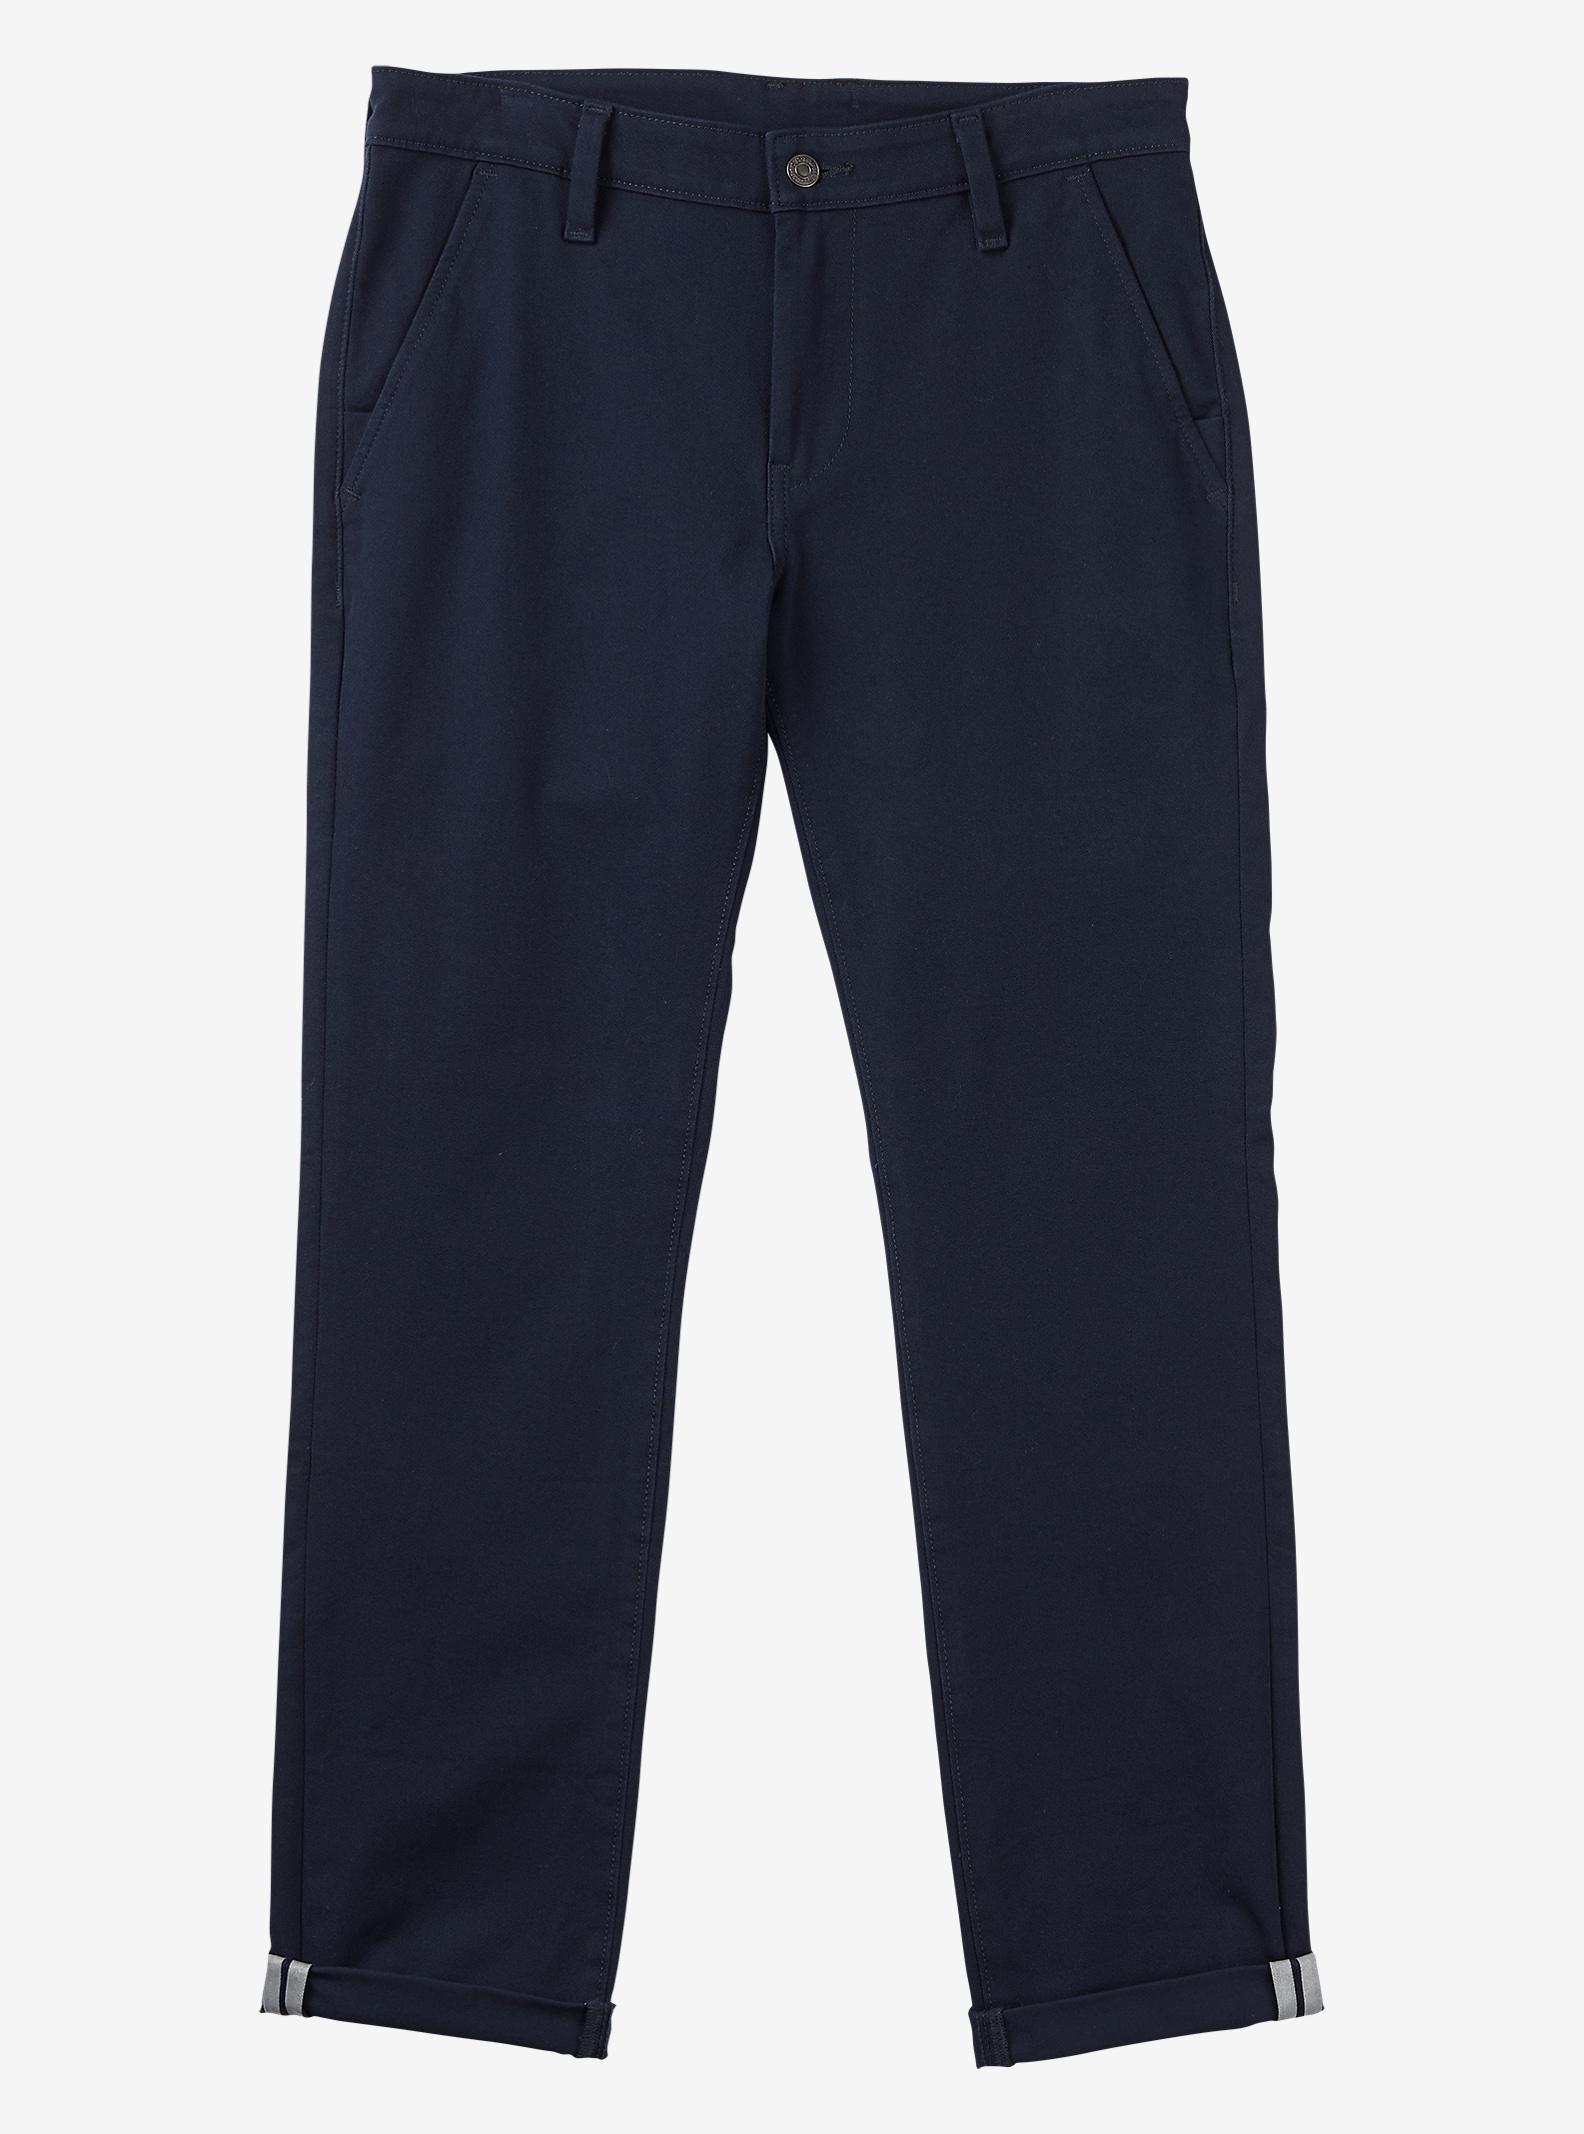 Levi's® Commuter™ 511™ Slim Fit Pant shown in Blue